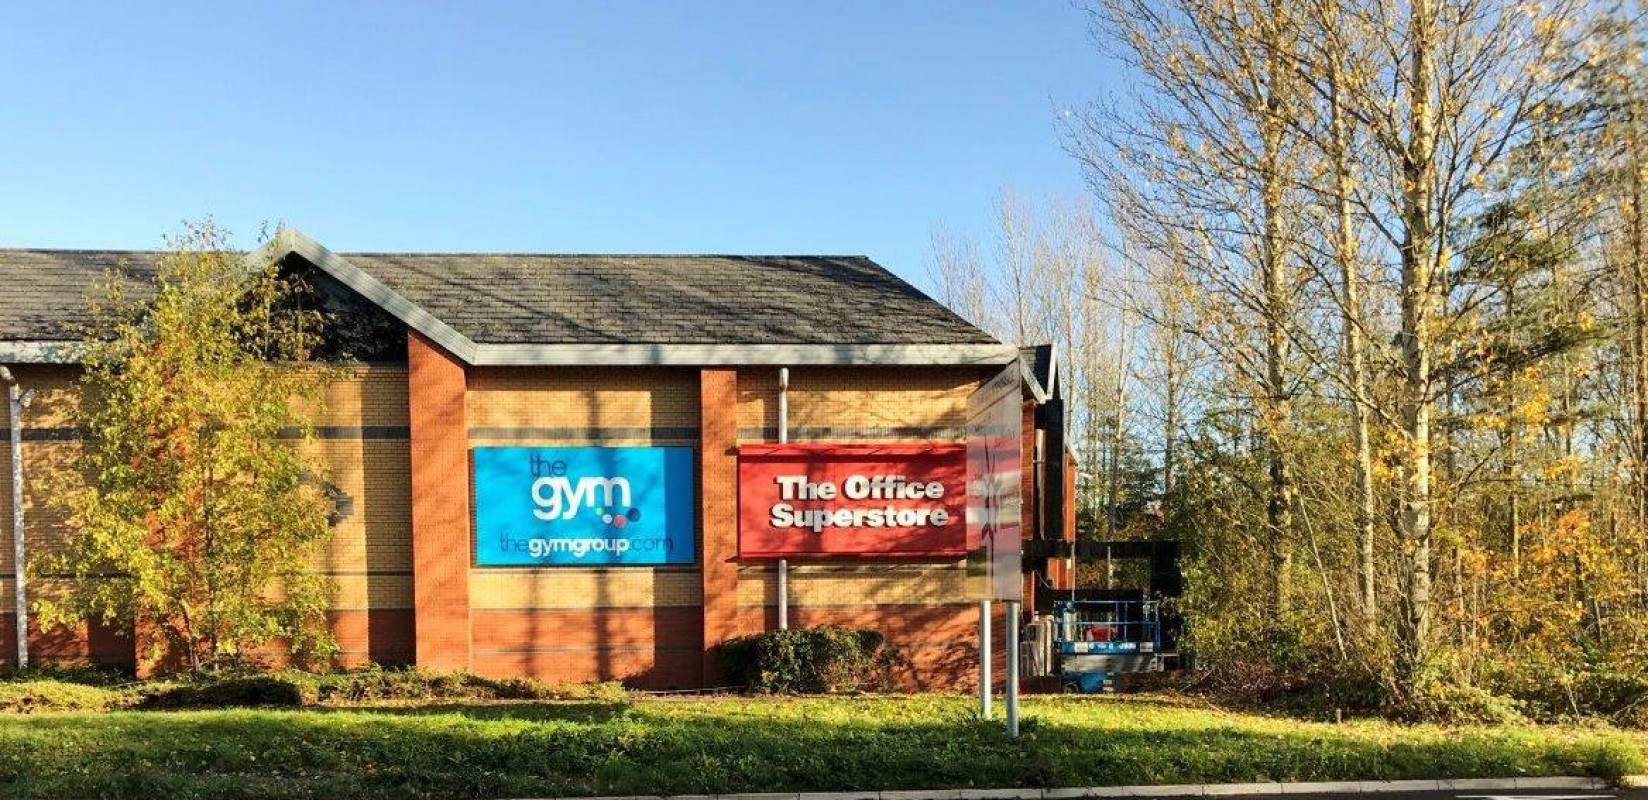 New Image for THE GYM GROUP TO OPEN IN TELFORD